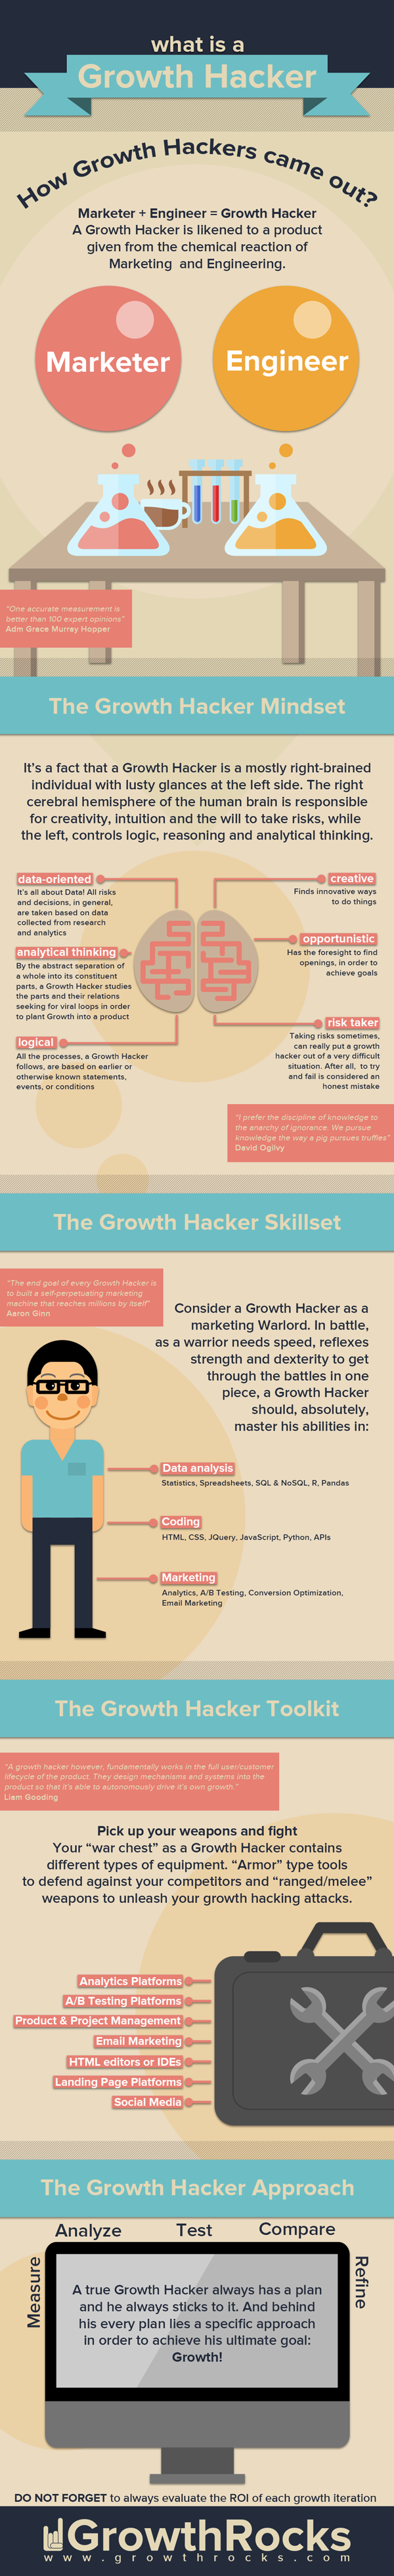 Infographic: What Is A Growth Hacker?